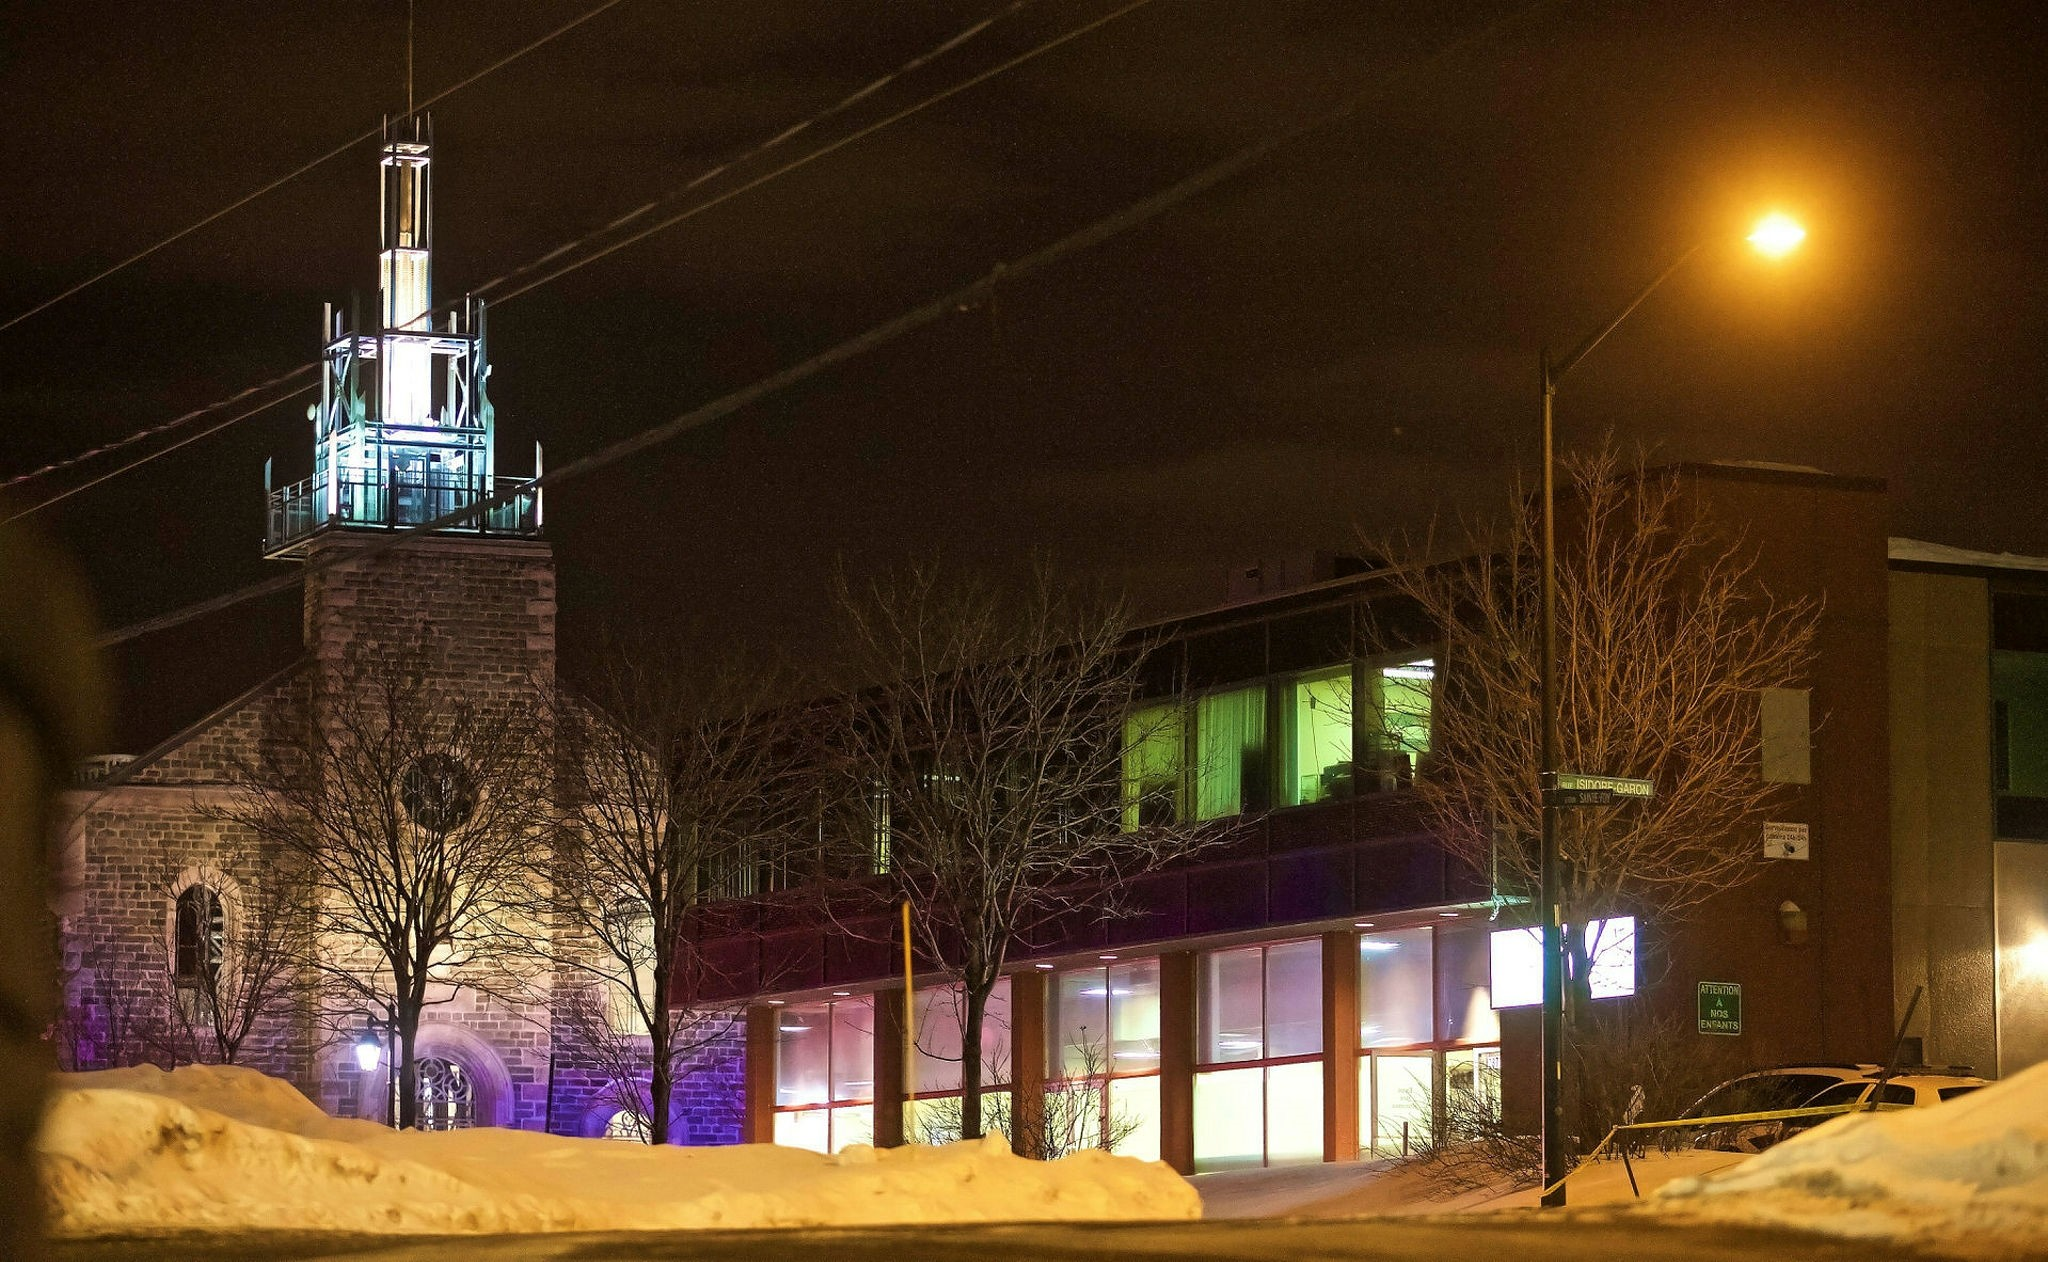 The Quebec Islamic Cultural Centre has been targeted in a series of violent attacks since January.